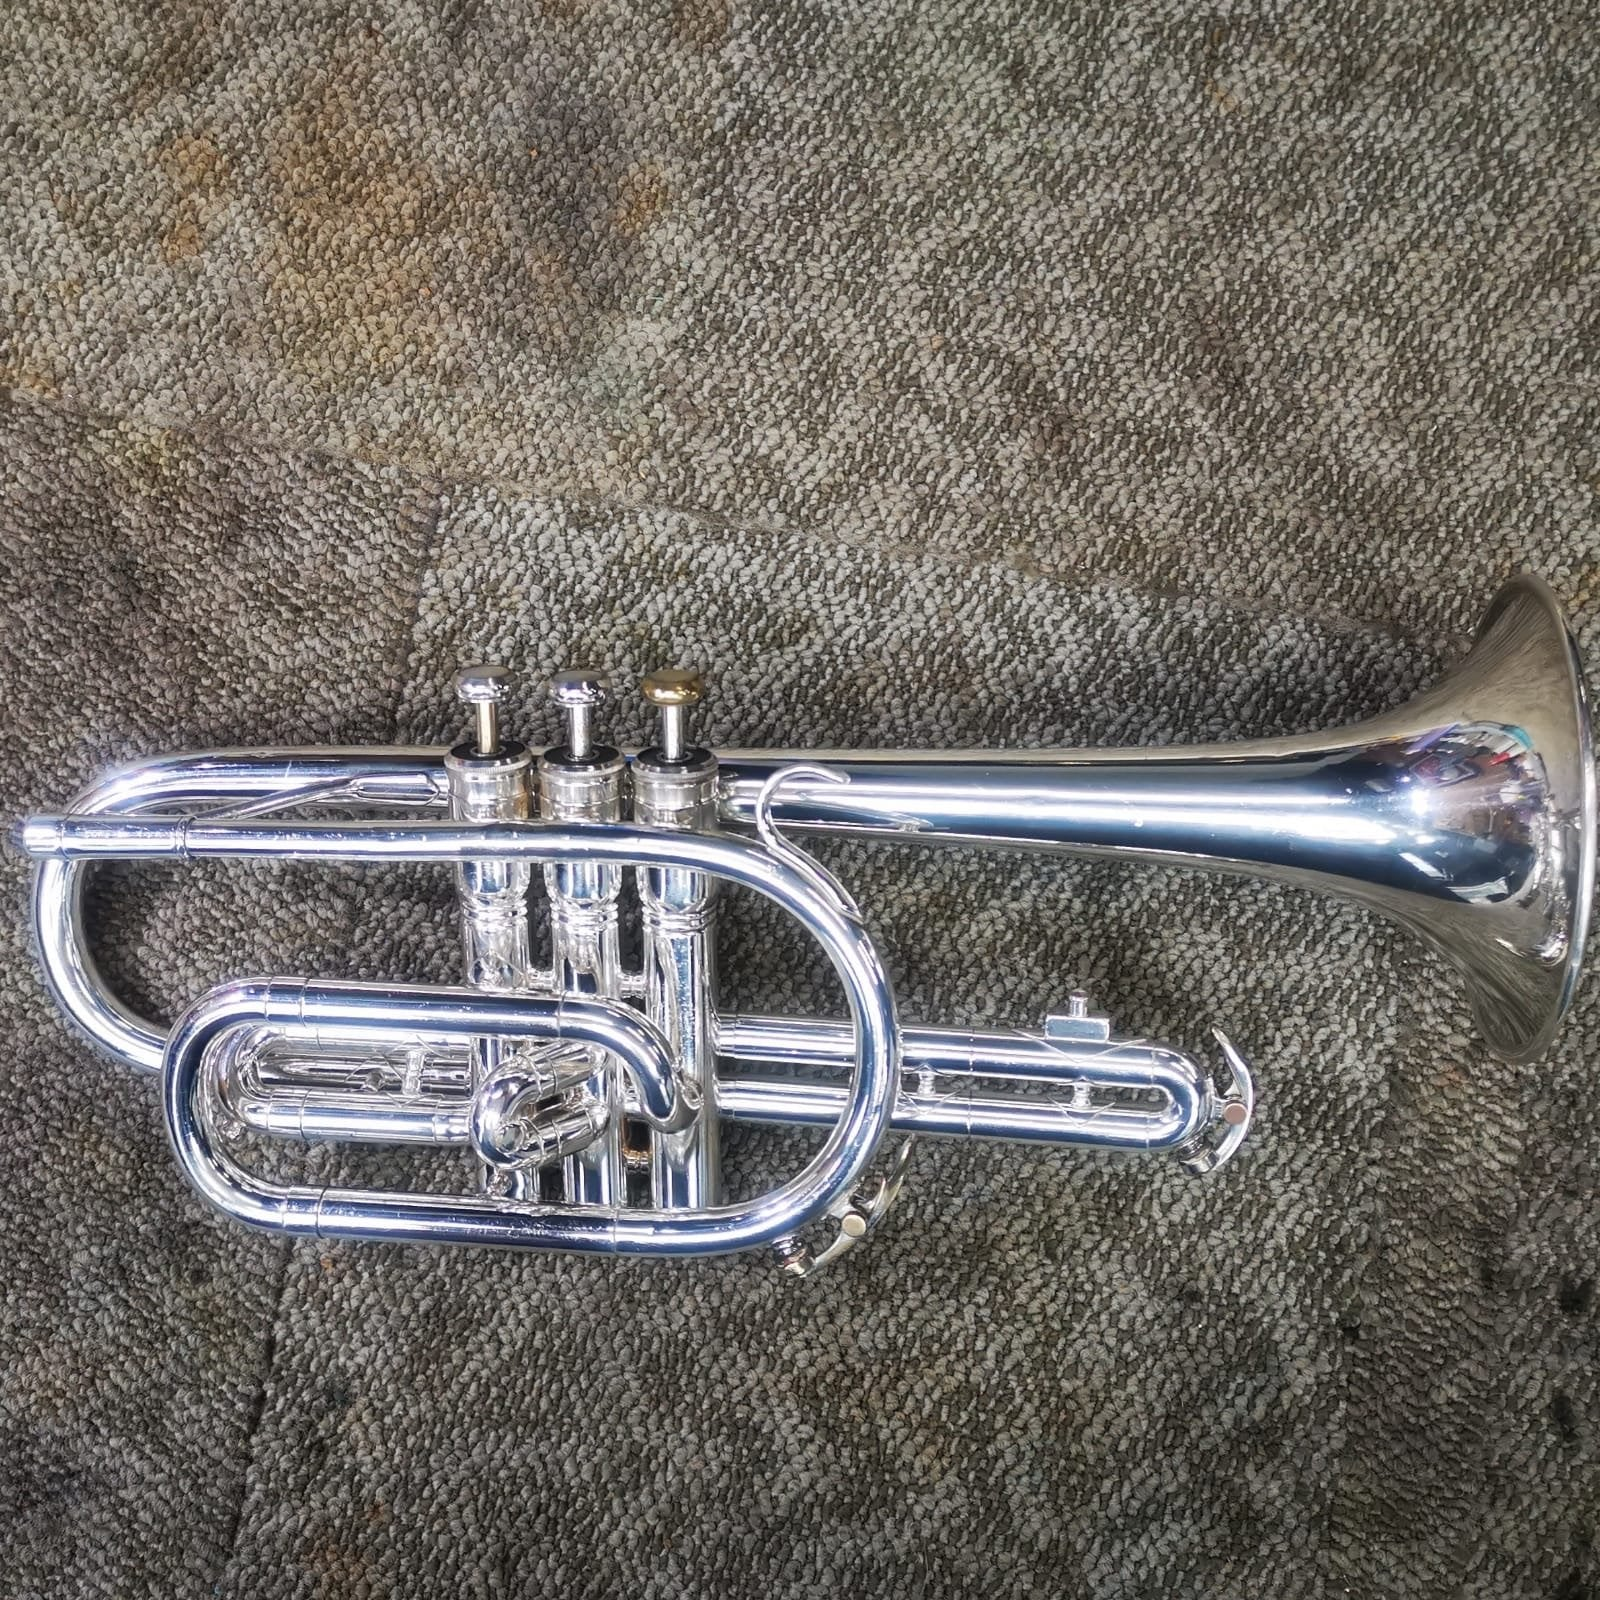 King - Tempo 602 Bb Cornet (Pre-Owned)-Cornet-King-Music Elements